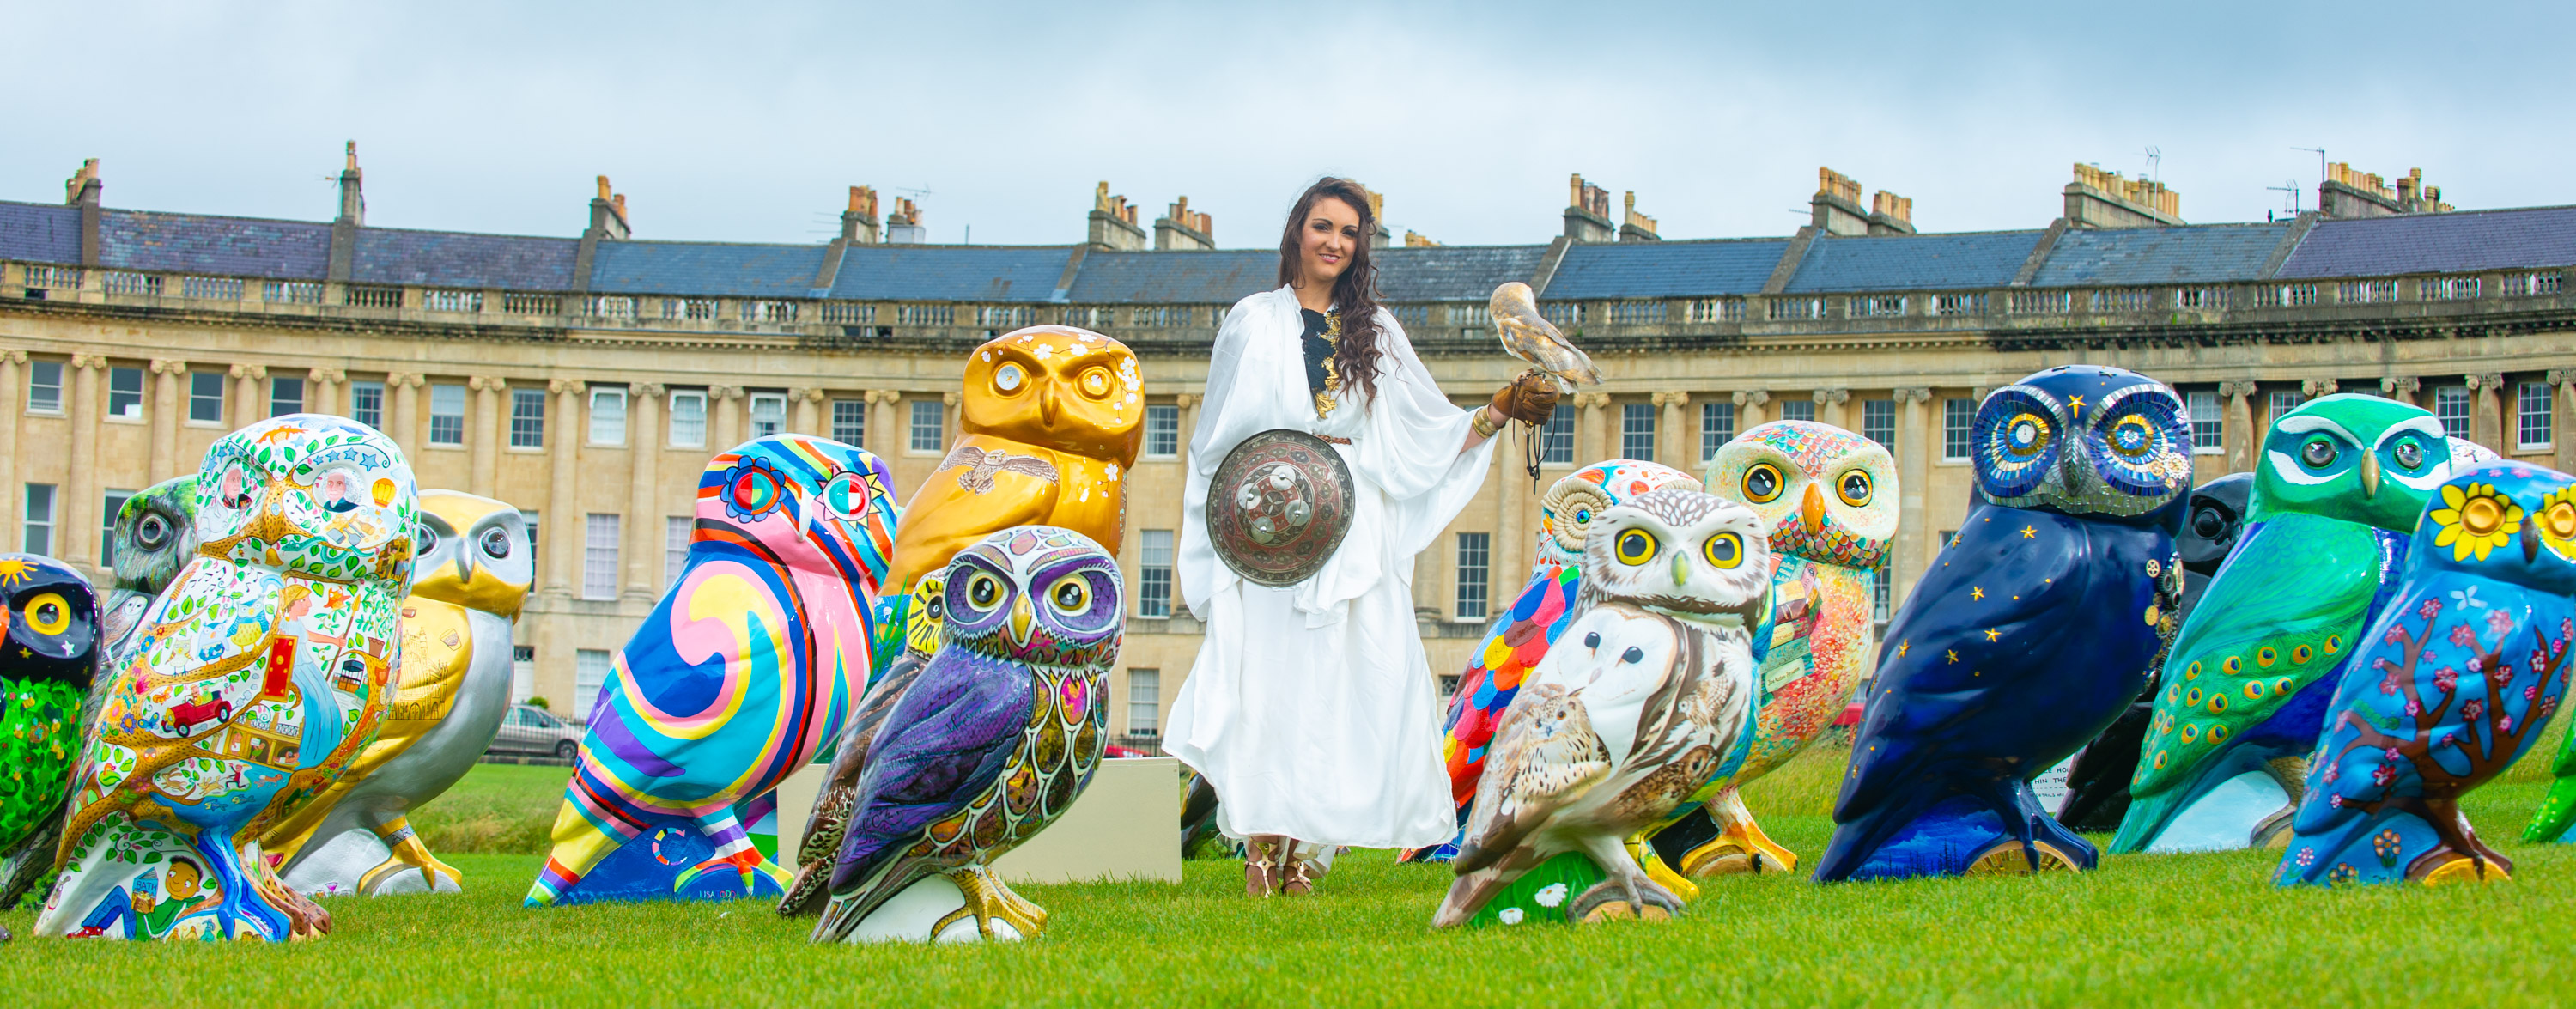 Thirty giant owl statues flock to Bath's Royal Crescent for the launch of the Minerva's Owls of Bath sculpture trail, starting on 25th June 2018. Goddess Minerva(Amelia Watt) poses with Ghost the Barn Owl alongside decorated statues from the Minerva's Owls of Bath sculpture trail, starting on 25th June 2018. Members of the public take a closer look at the decorated flock of owls ahead of the launch of the Minerva's Owls of Bath sculpture trail, starting on 25th June 2018. Tuesday 19 June 2018 PHOTO:PAUL GILLIS / paulgillisphoto.com